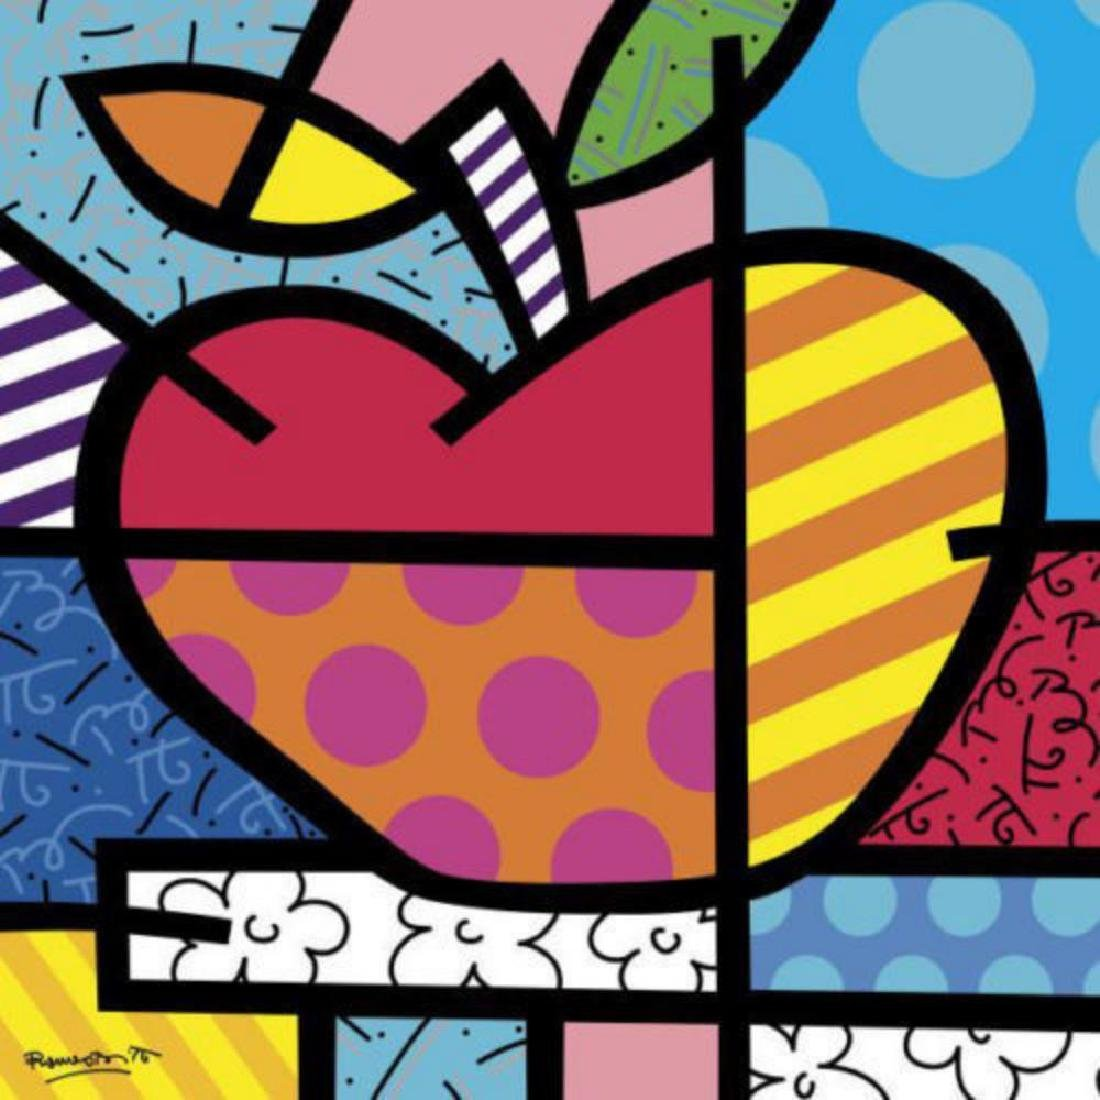 The Apple by Romero Britto Offset lithograph framed